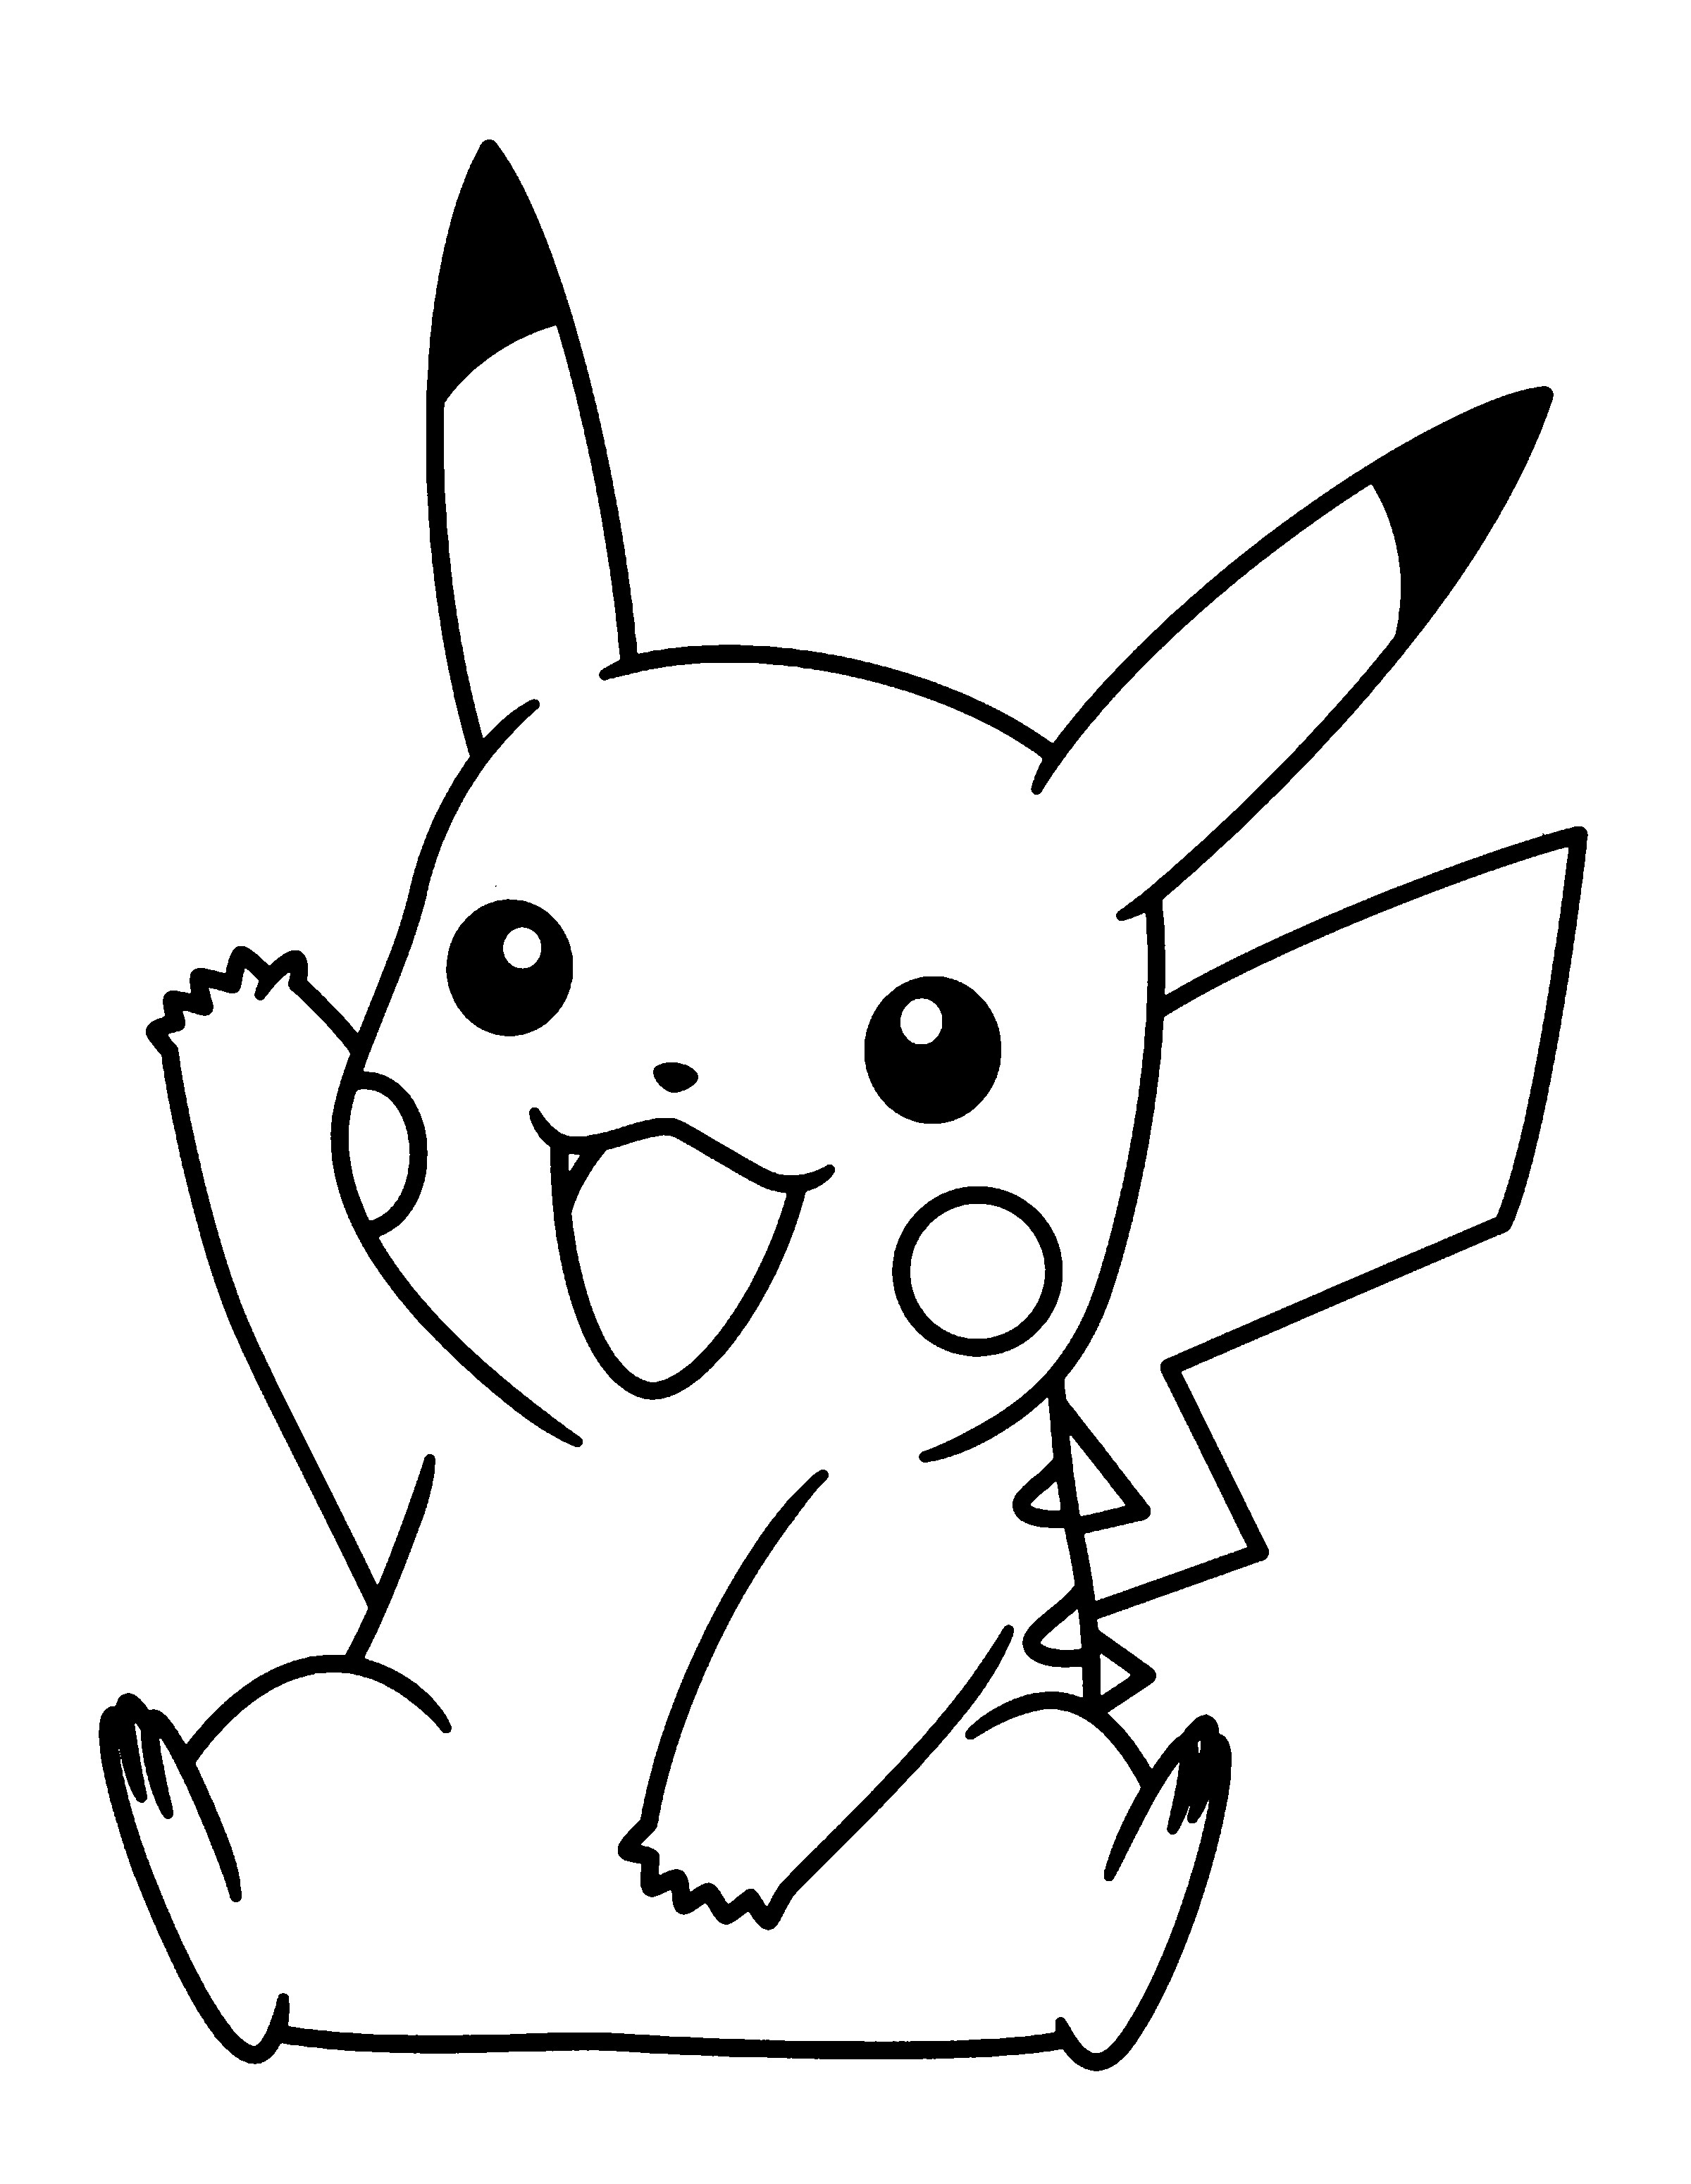 hard pokemon coloring pages printable pokemon 9 coloring pages coloringpagebookcom pokemon pages hard coloring